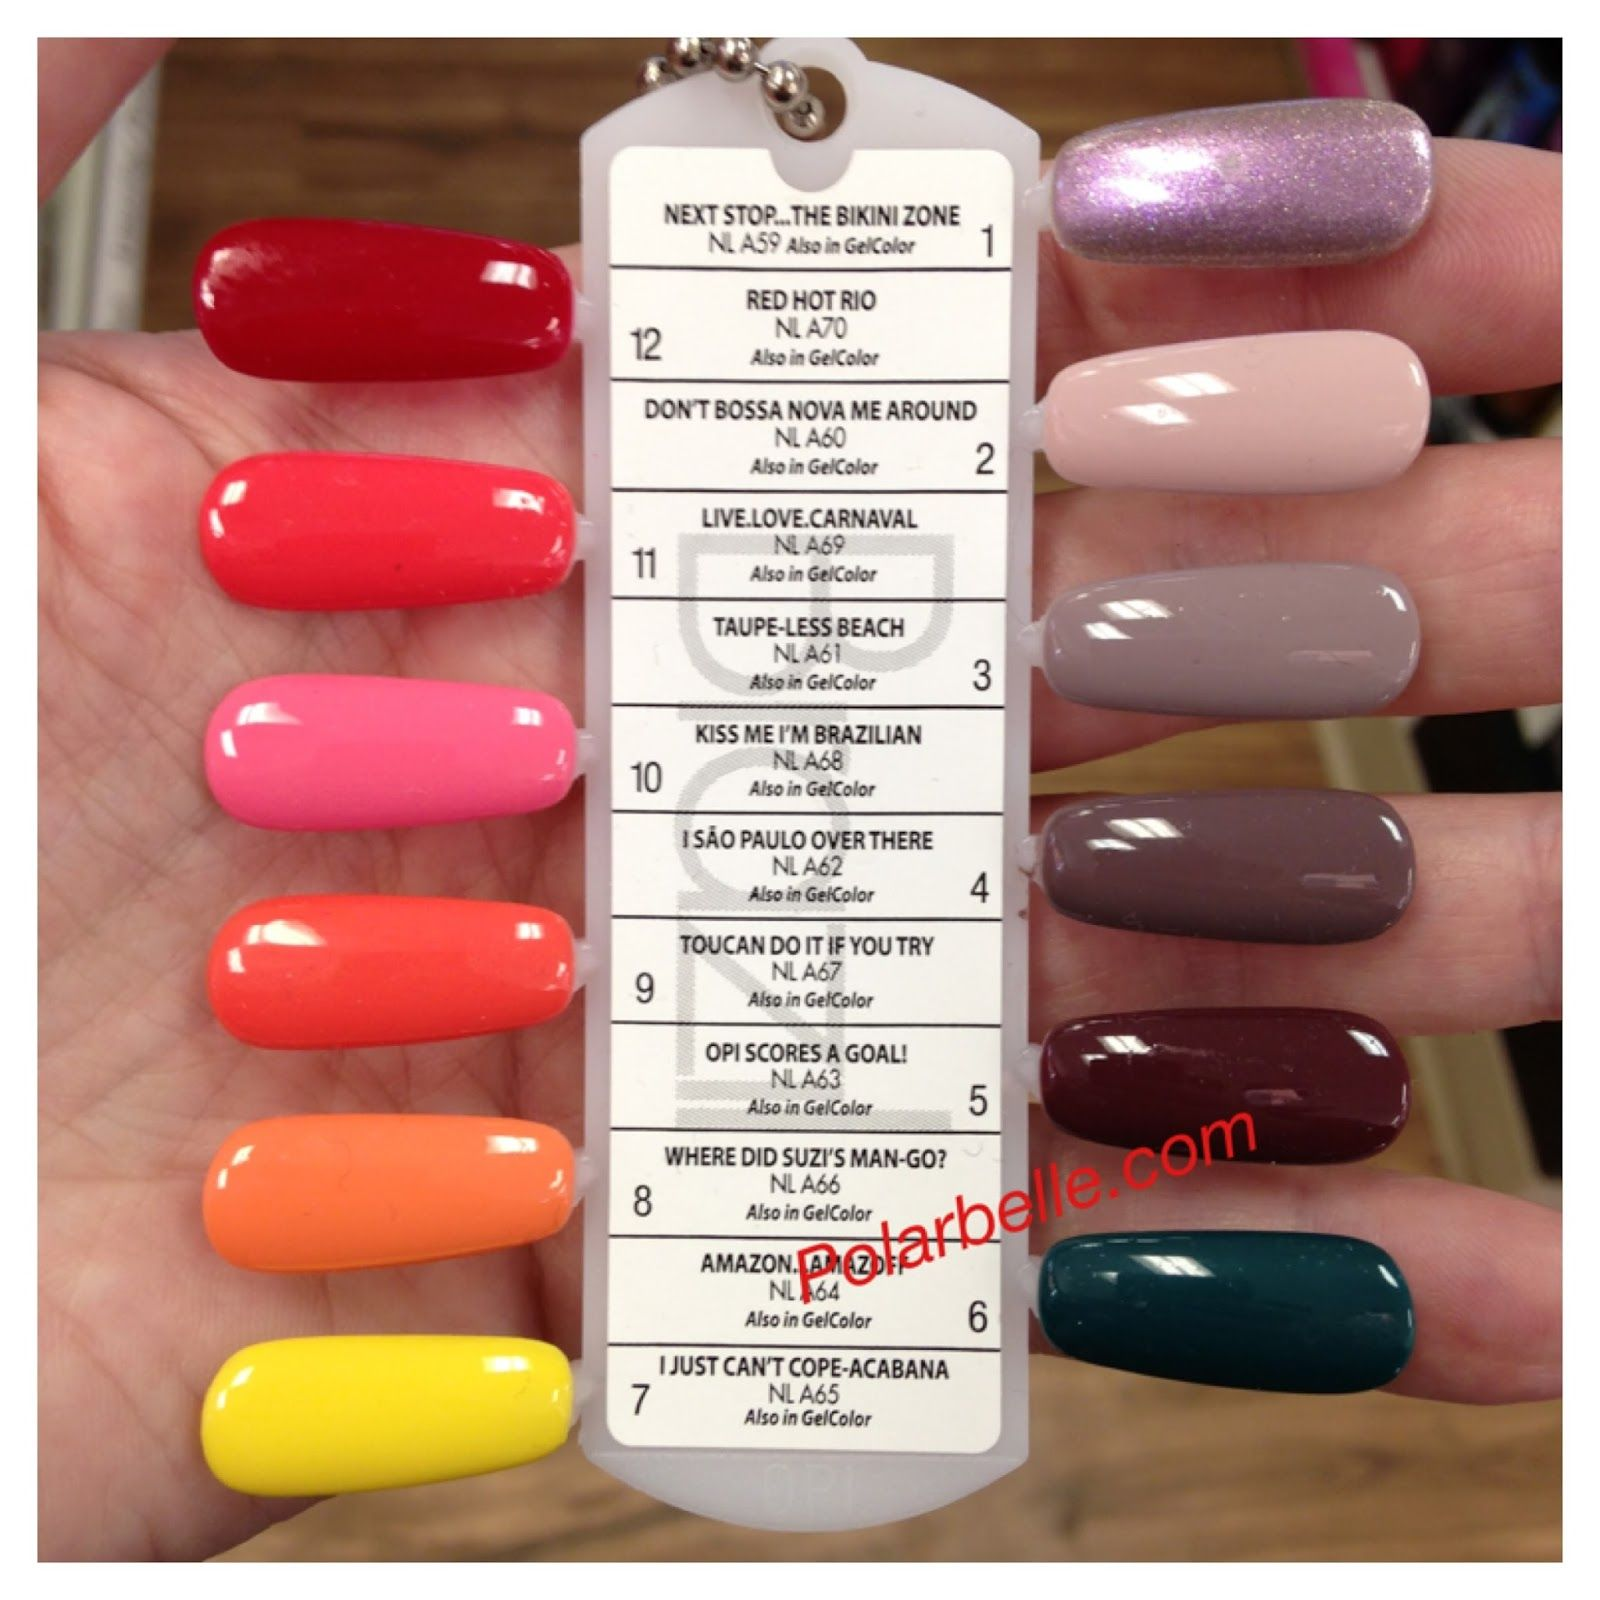 OPI Brazil Nail Polish Collection Pics, Swatches, With Names!